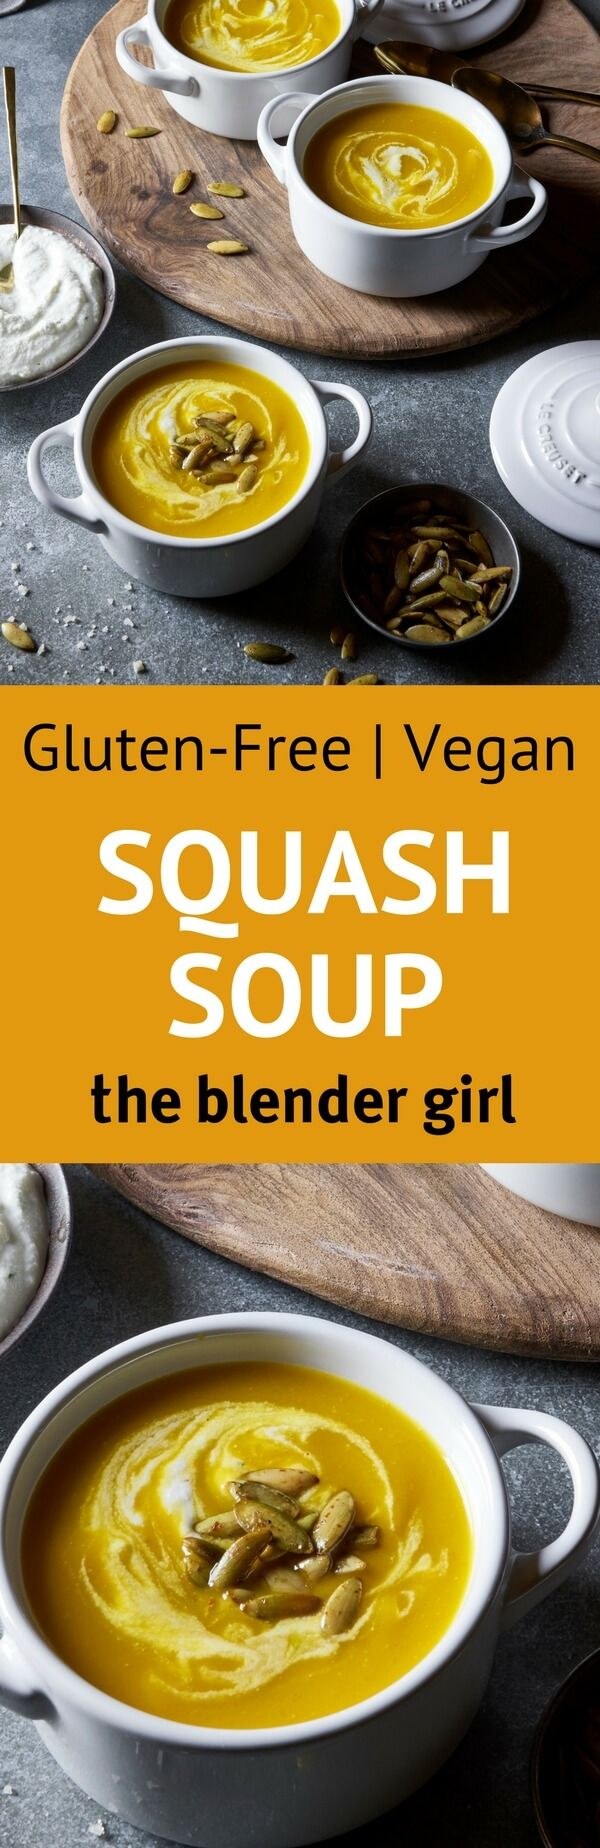 Looking for awesome gluten free vegan thanksgiving recipes? This vegan roasted squash soup from Candle 79 rocks!